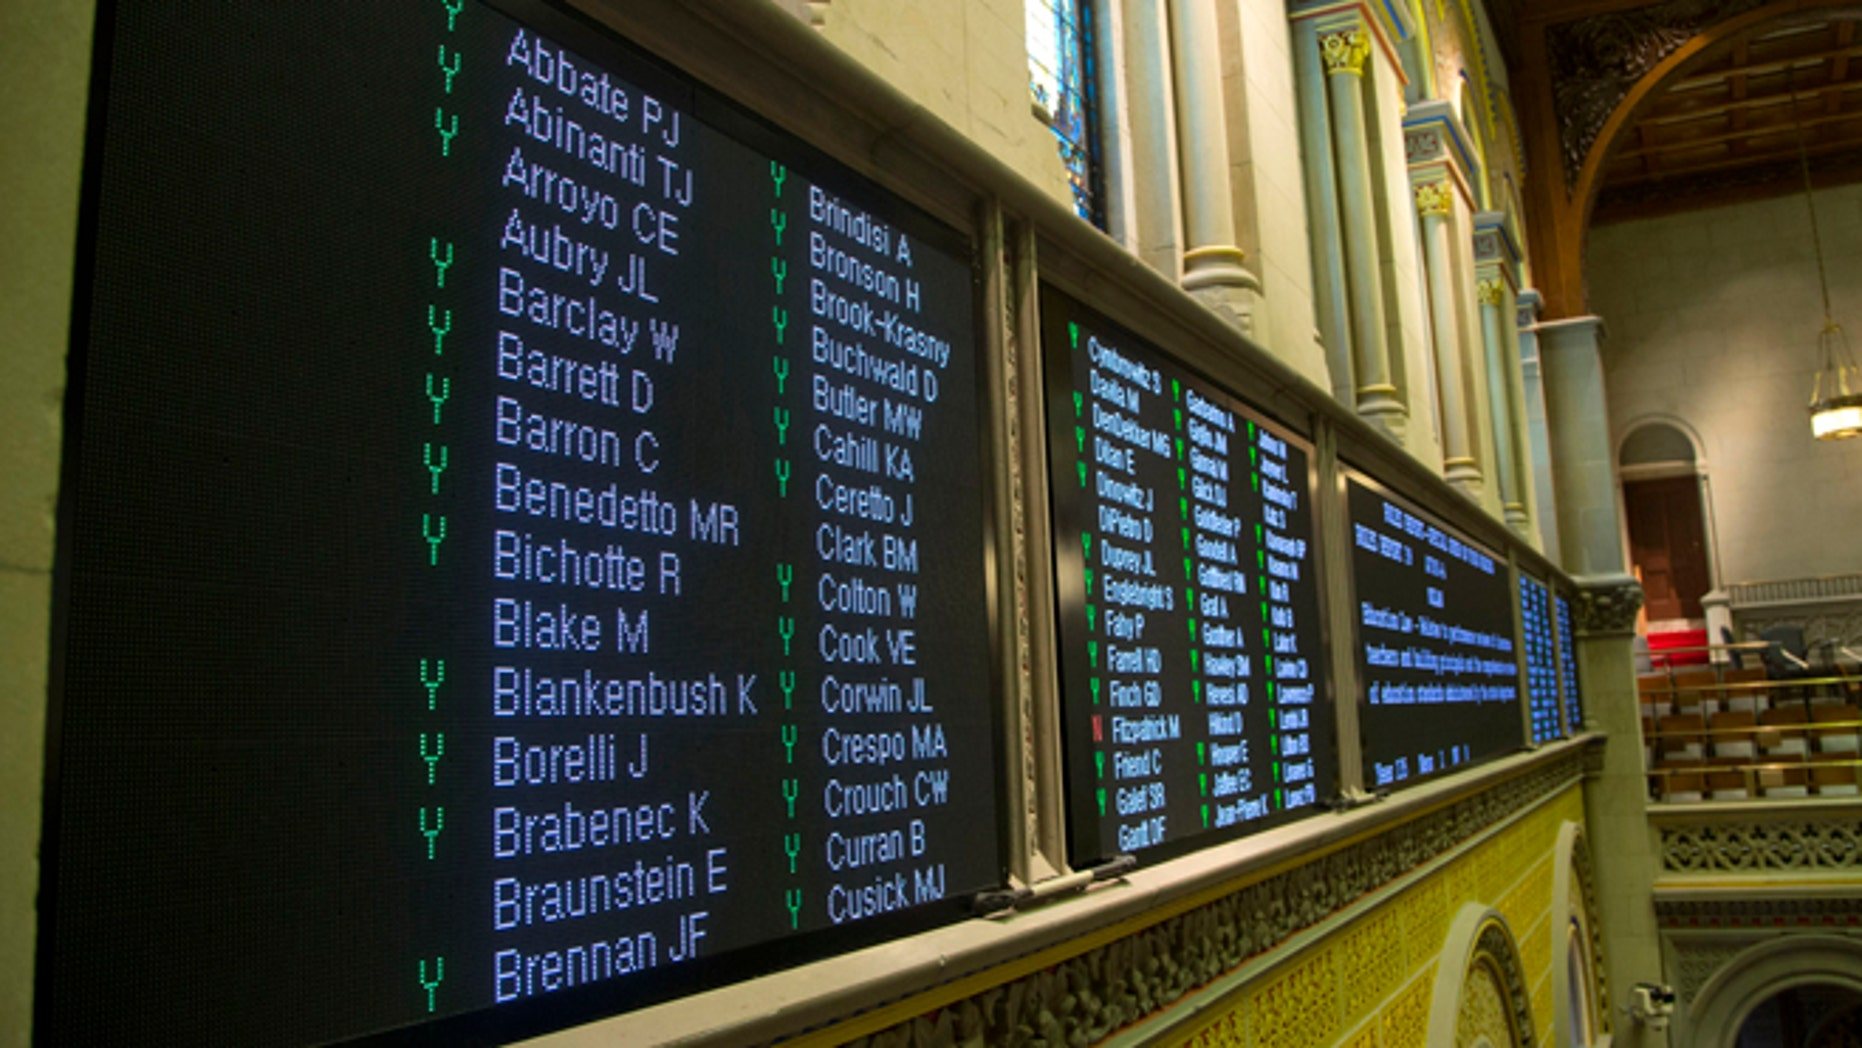 In this May 20, 2015 photo, votes are registered on an electronic tote board in the Assembly Chamber at the Capitol in Albany, N.Y. As New York lawmakers enter the final weeks of their session in Albany, prospects have dimmed for a number of once high-profile proposals including a ban on hazardous chemicals in childrens toys, a minimum wage hike and a bill to prevent discrimination against transgender New Yorkers. (AP Photo/Mike Groll)